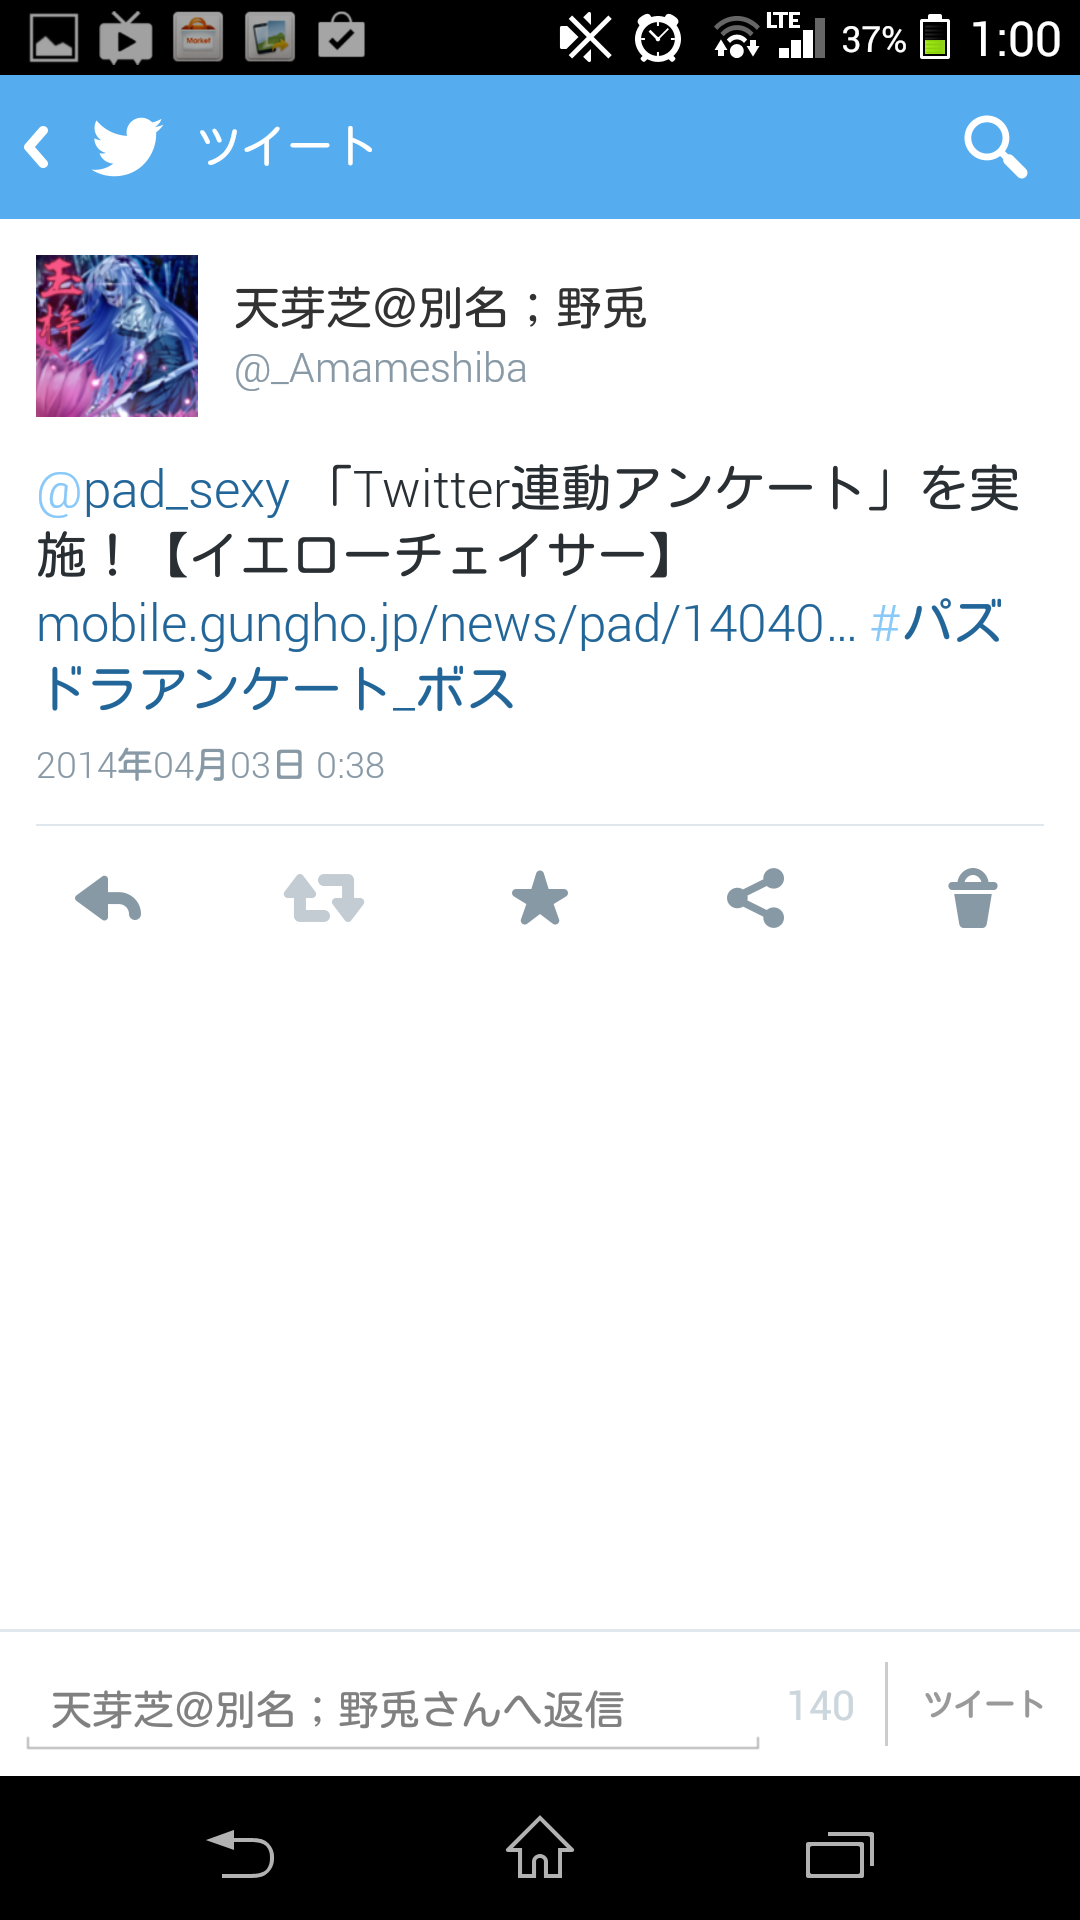 Screenshot_2014-04-03-01-00-42.png